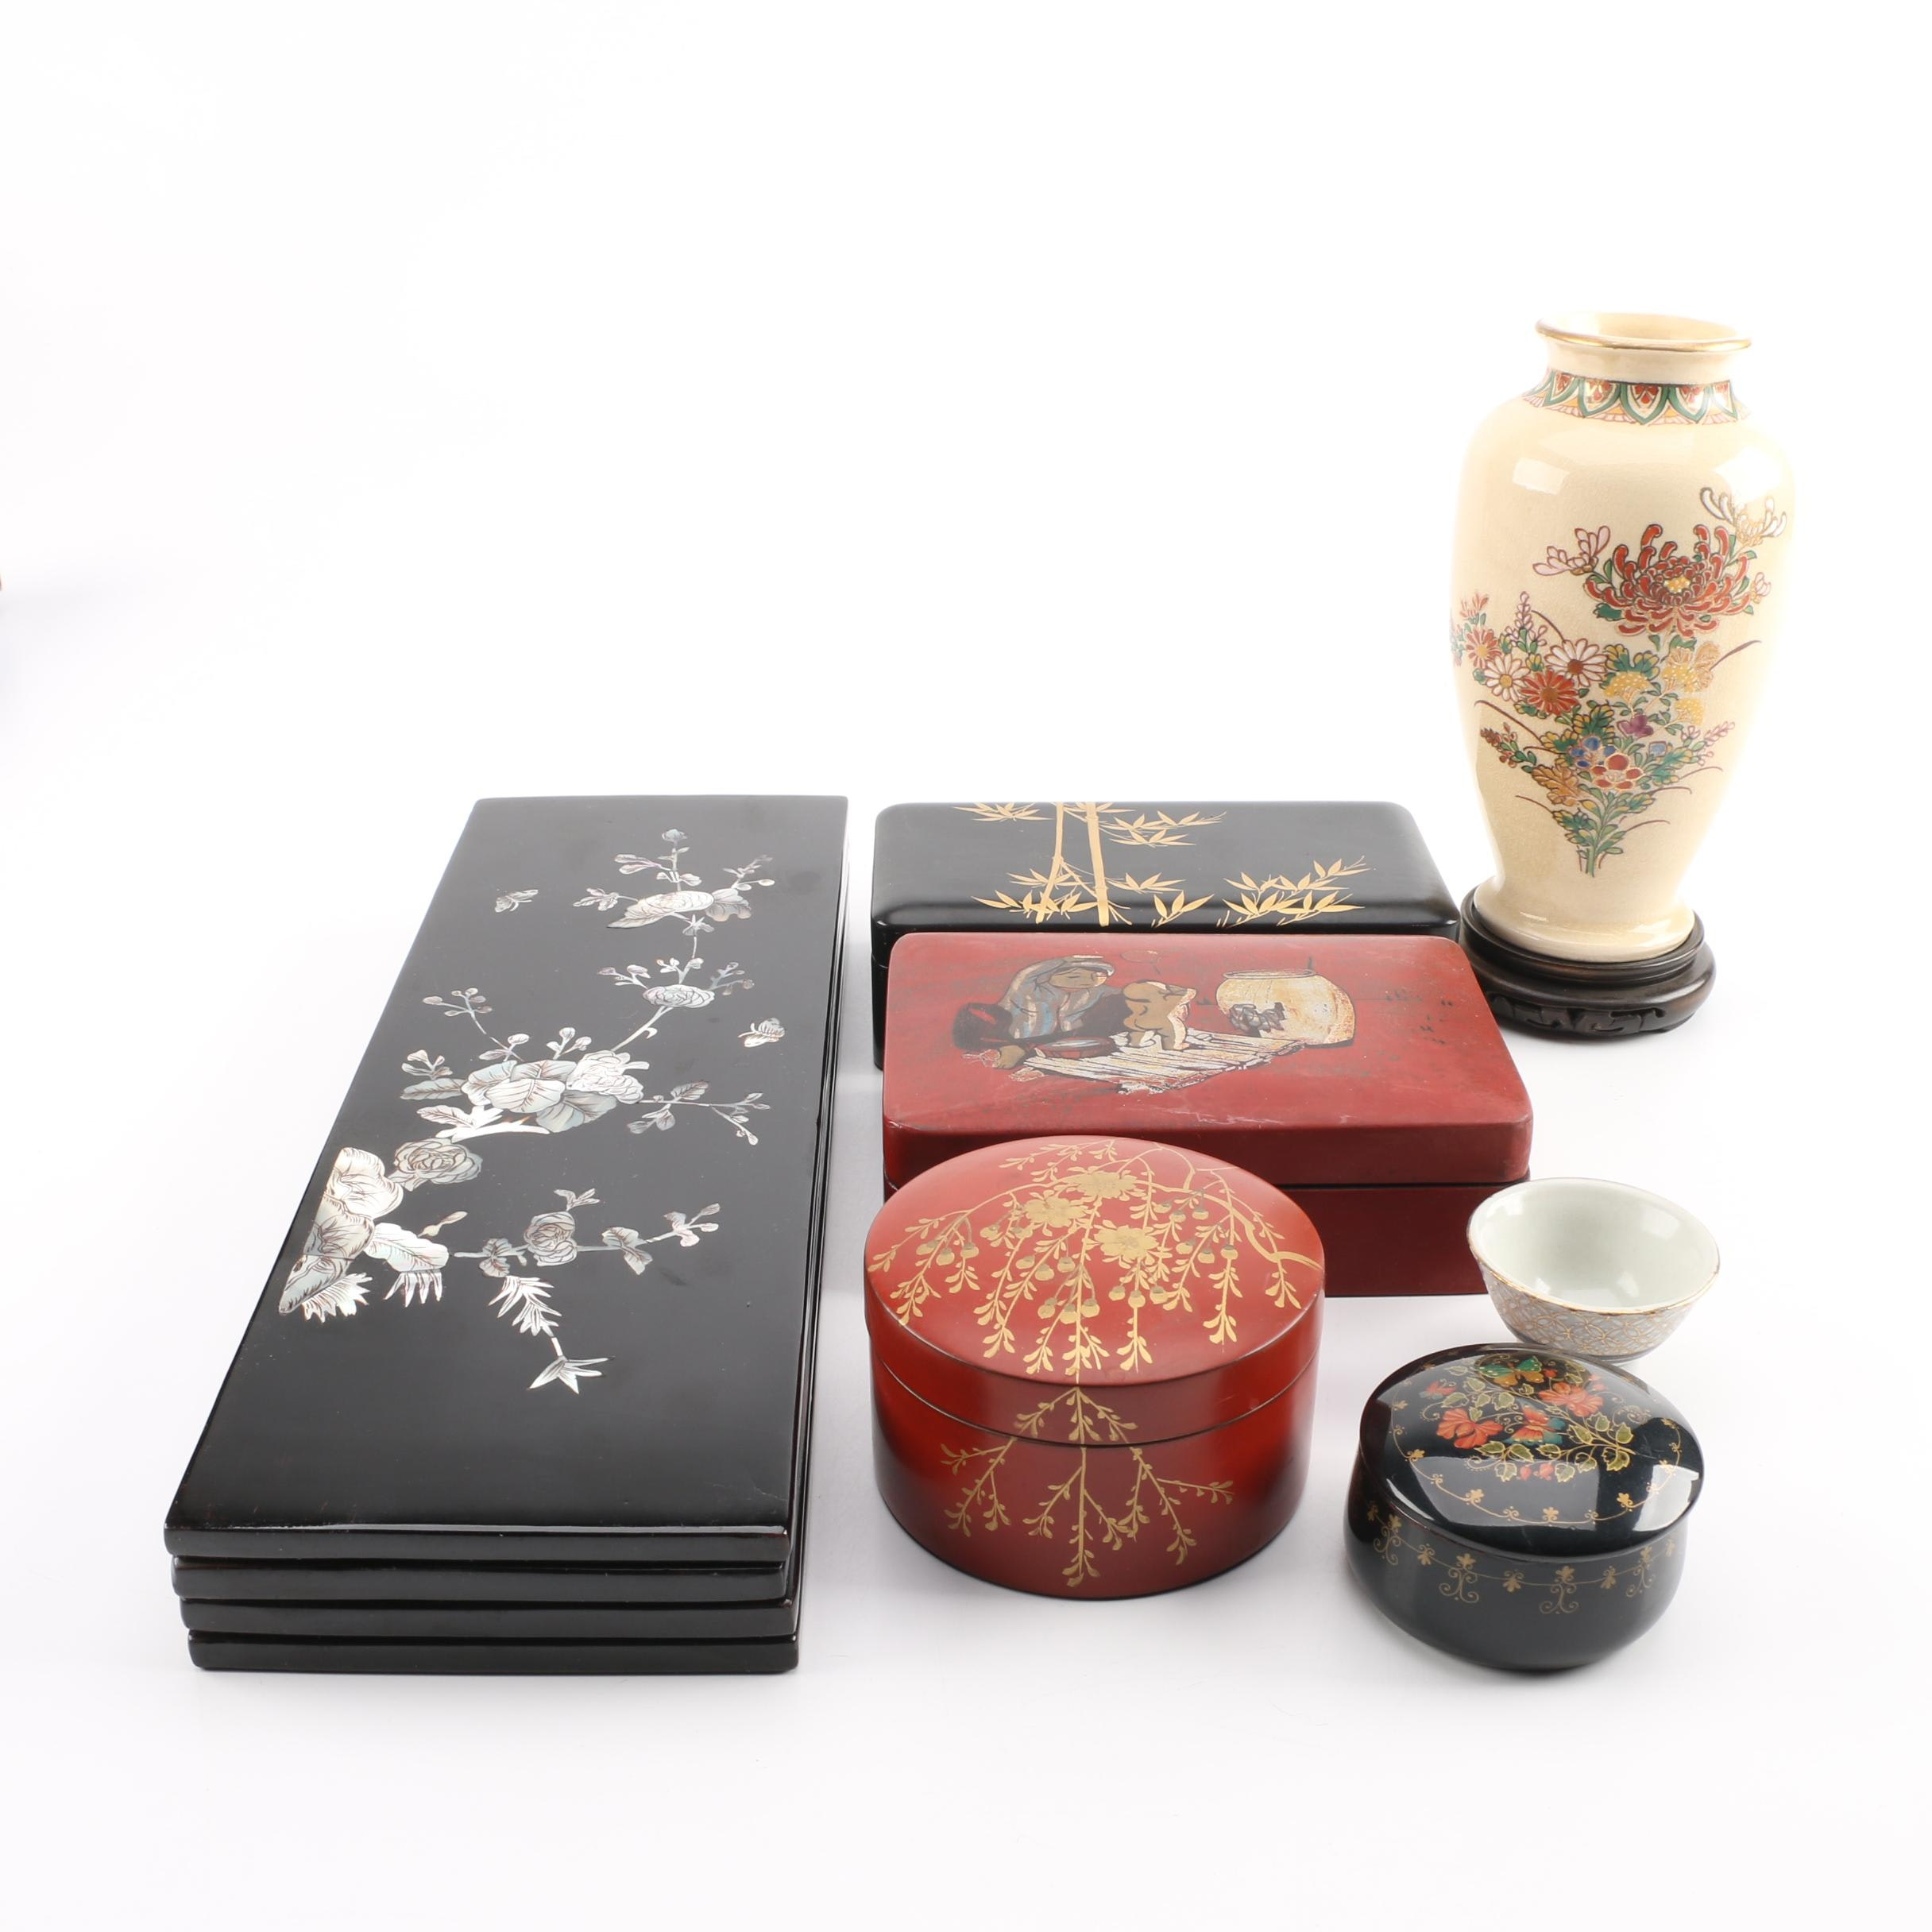 Chinese Tabletop Screen, Vase, Lacquer Ware Plates and Others